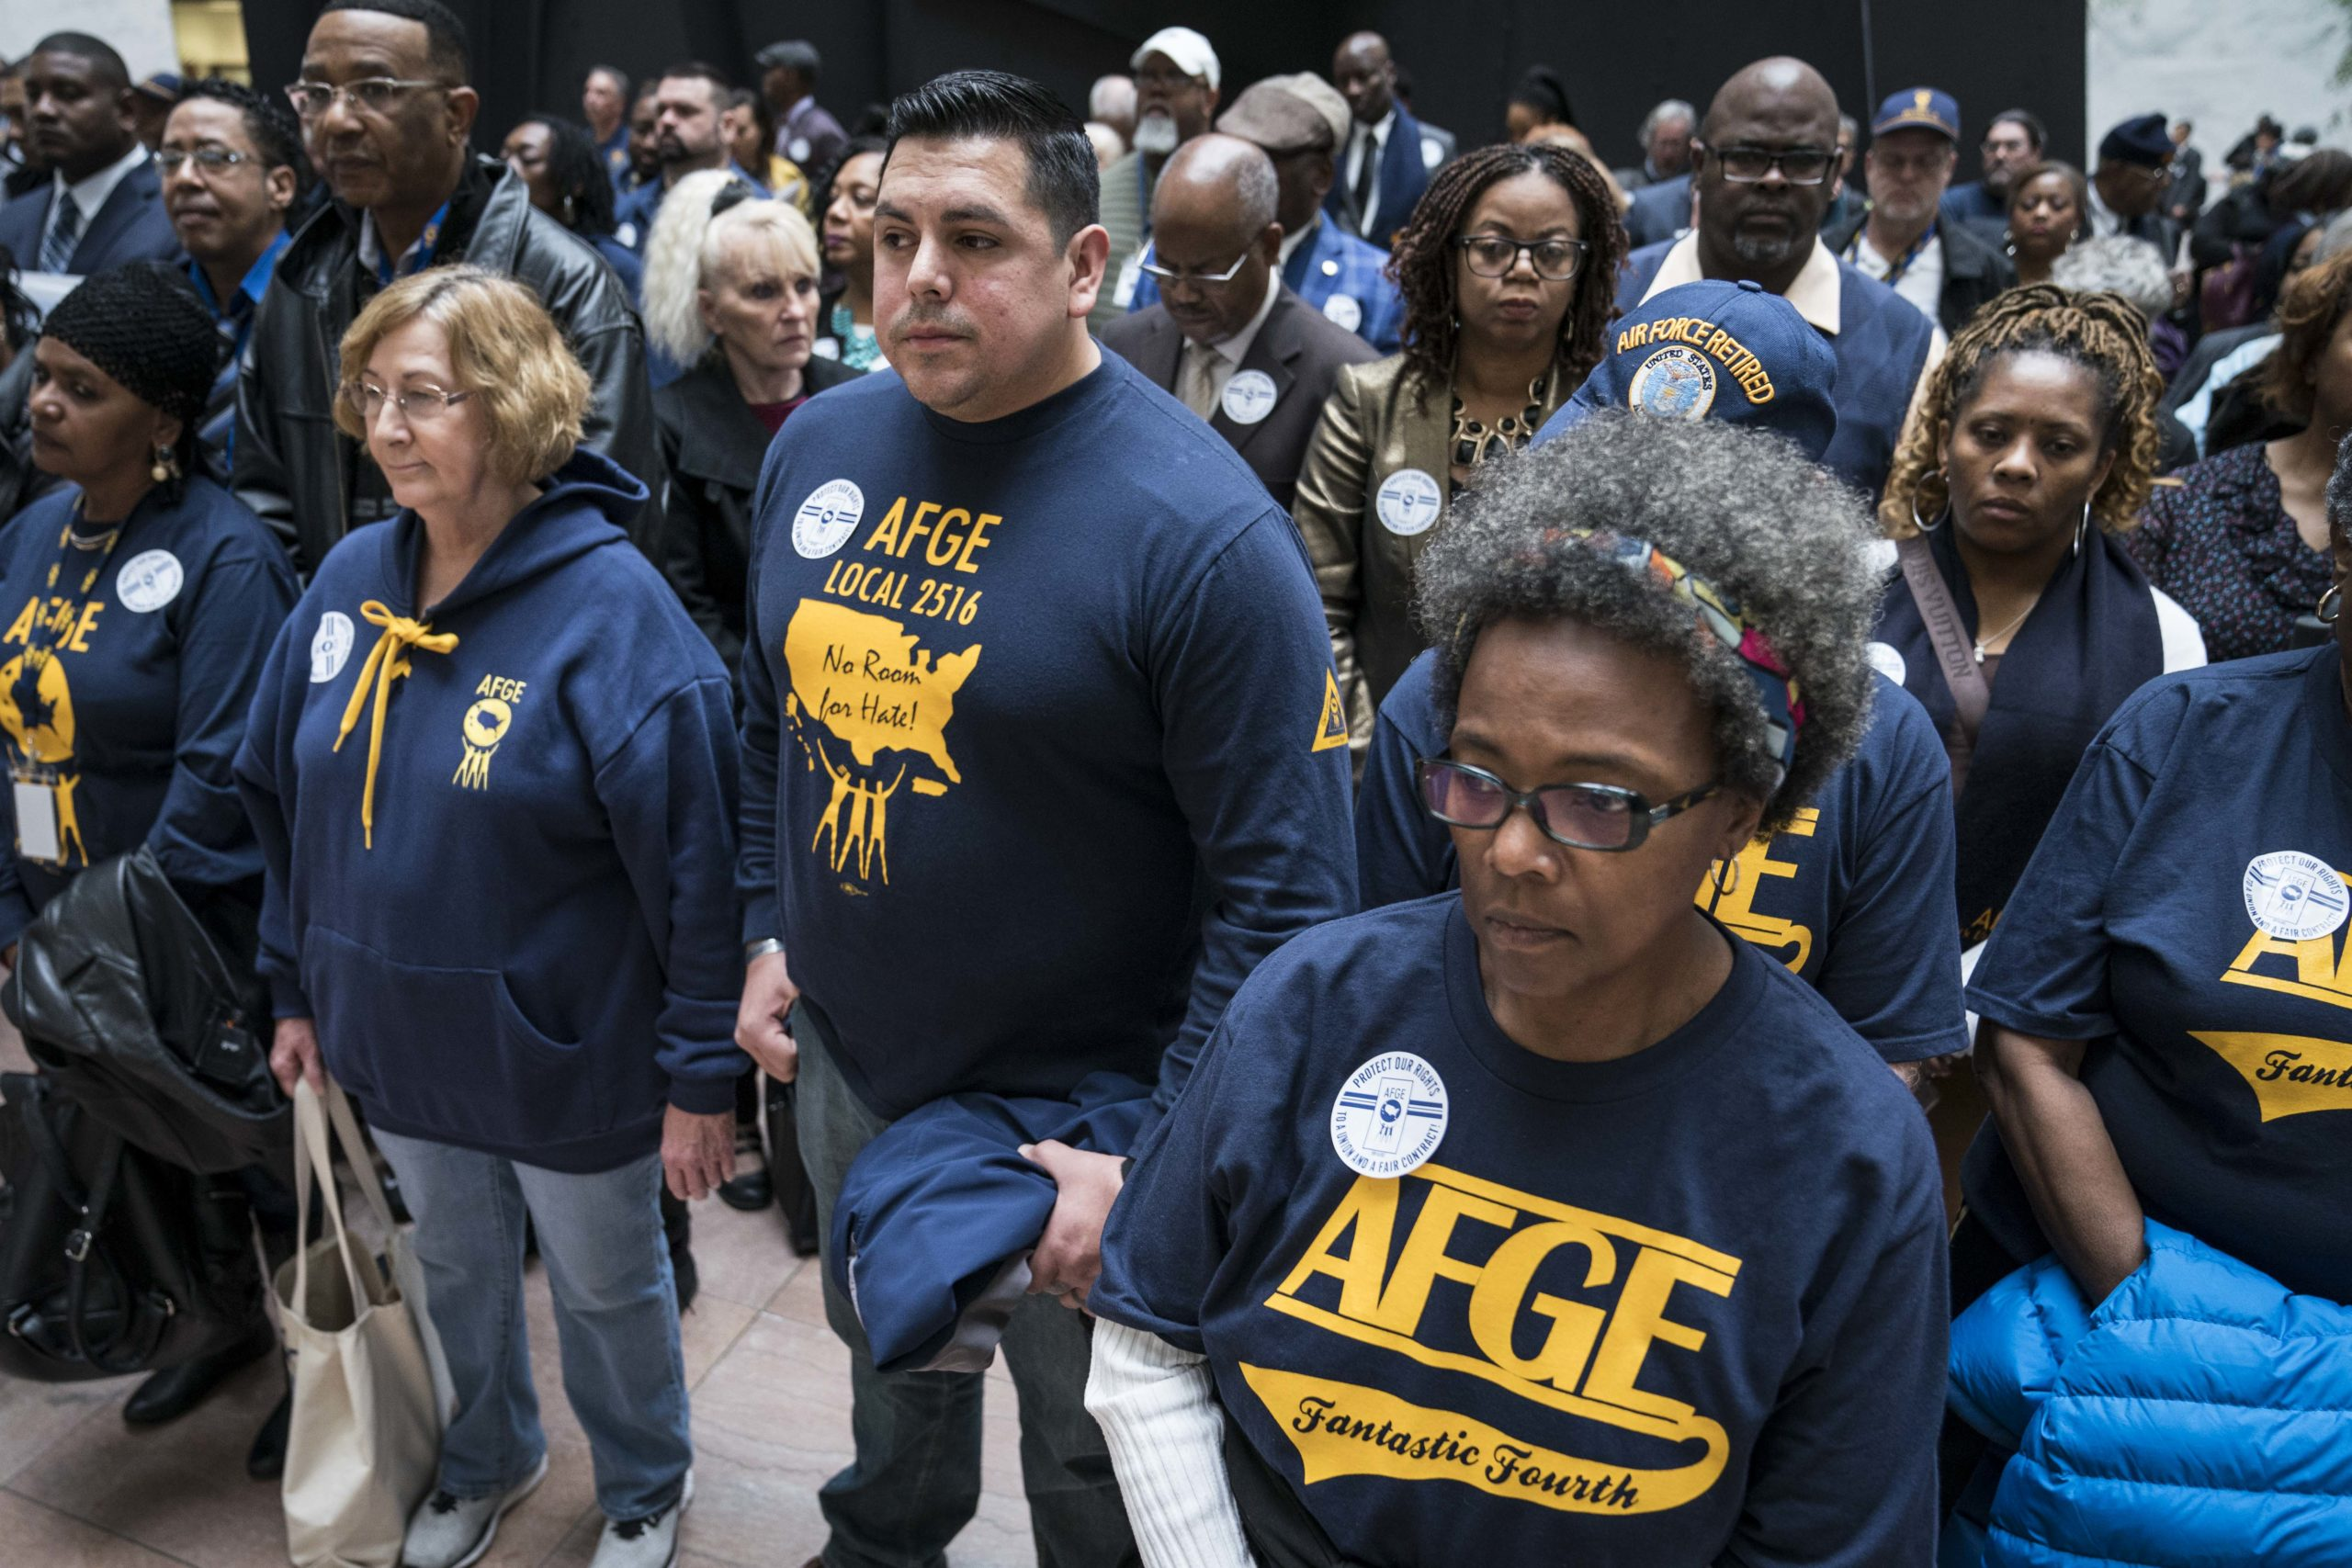 Members and supporters of the American Federation of Government Employees participate in a protest Washington, D.C. on Feb. 11. (Sarah Silbiger/Getty Images)